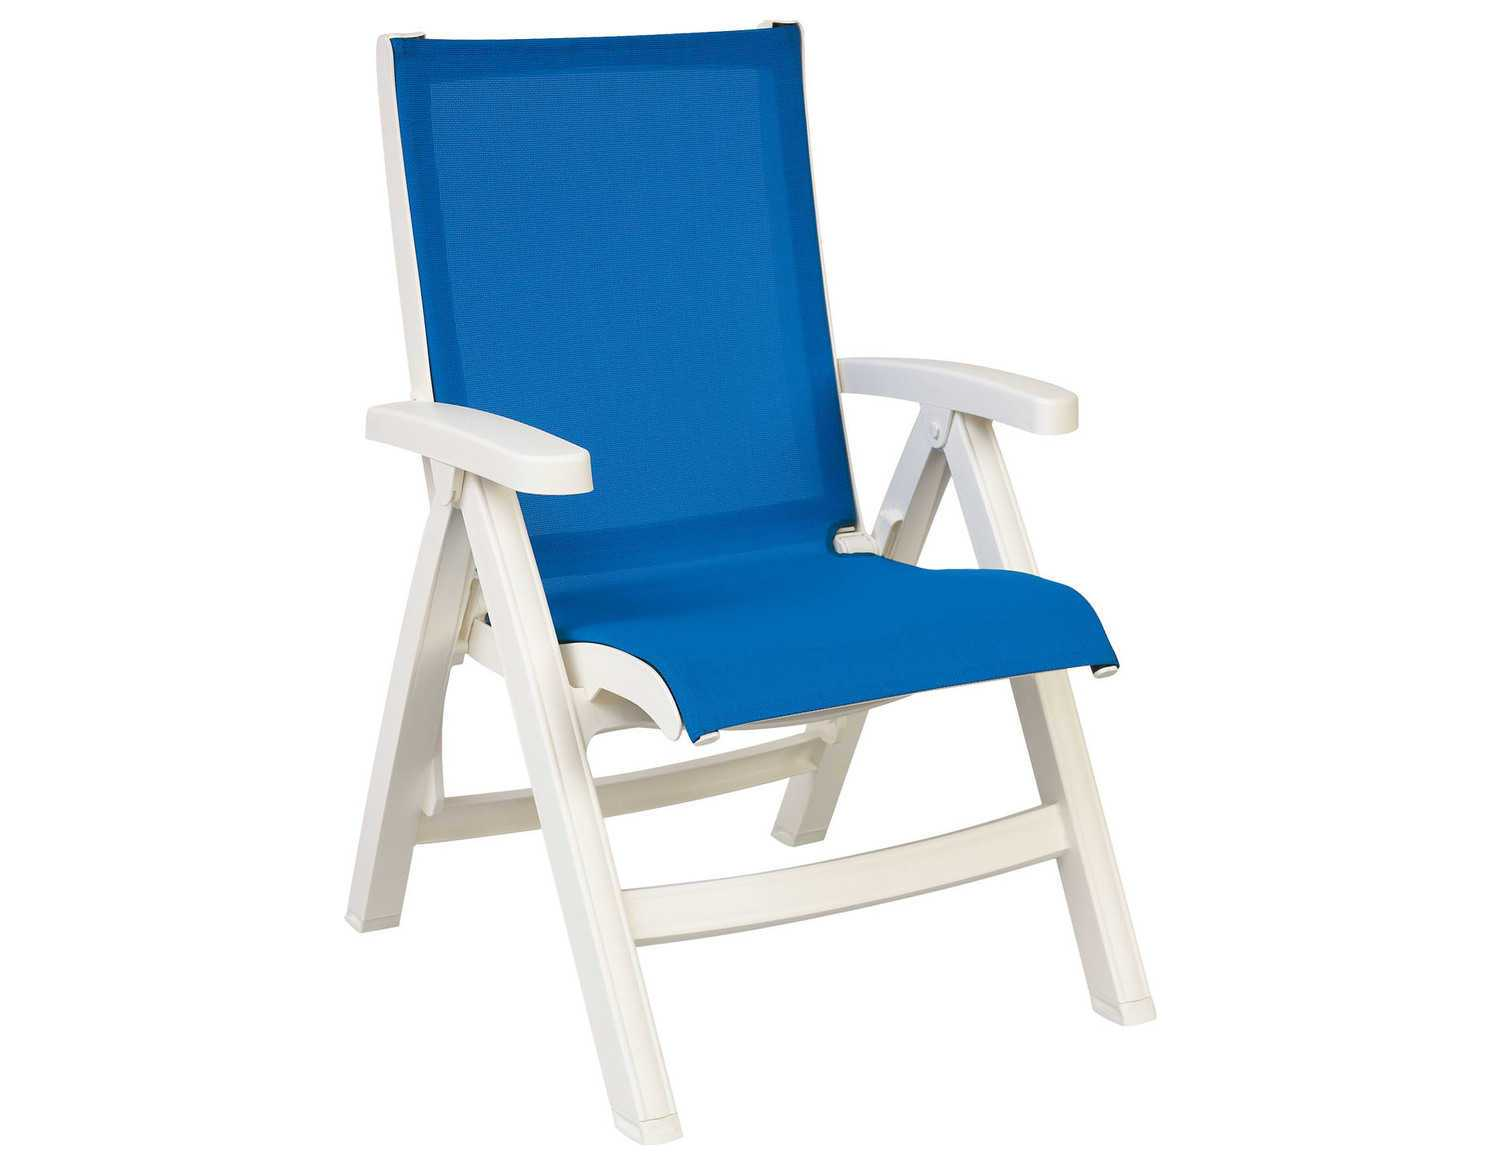 Grosfillex Belize Midback Resin Folding Sling White Lounge Chair Sold in 2